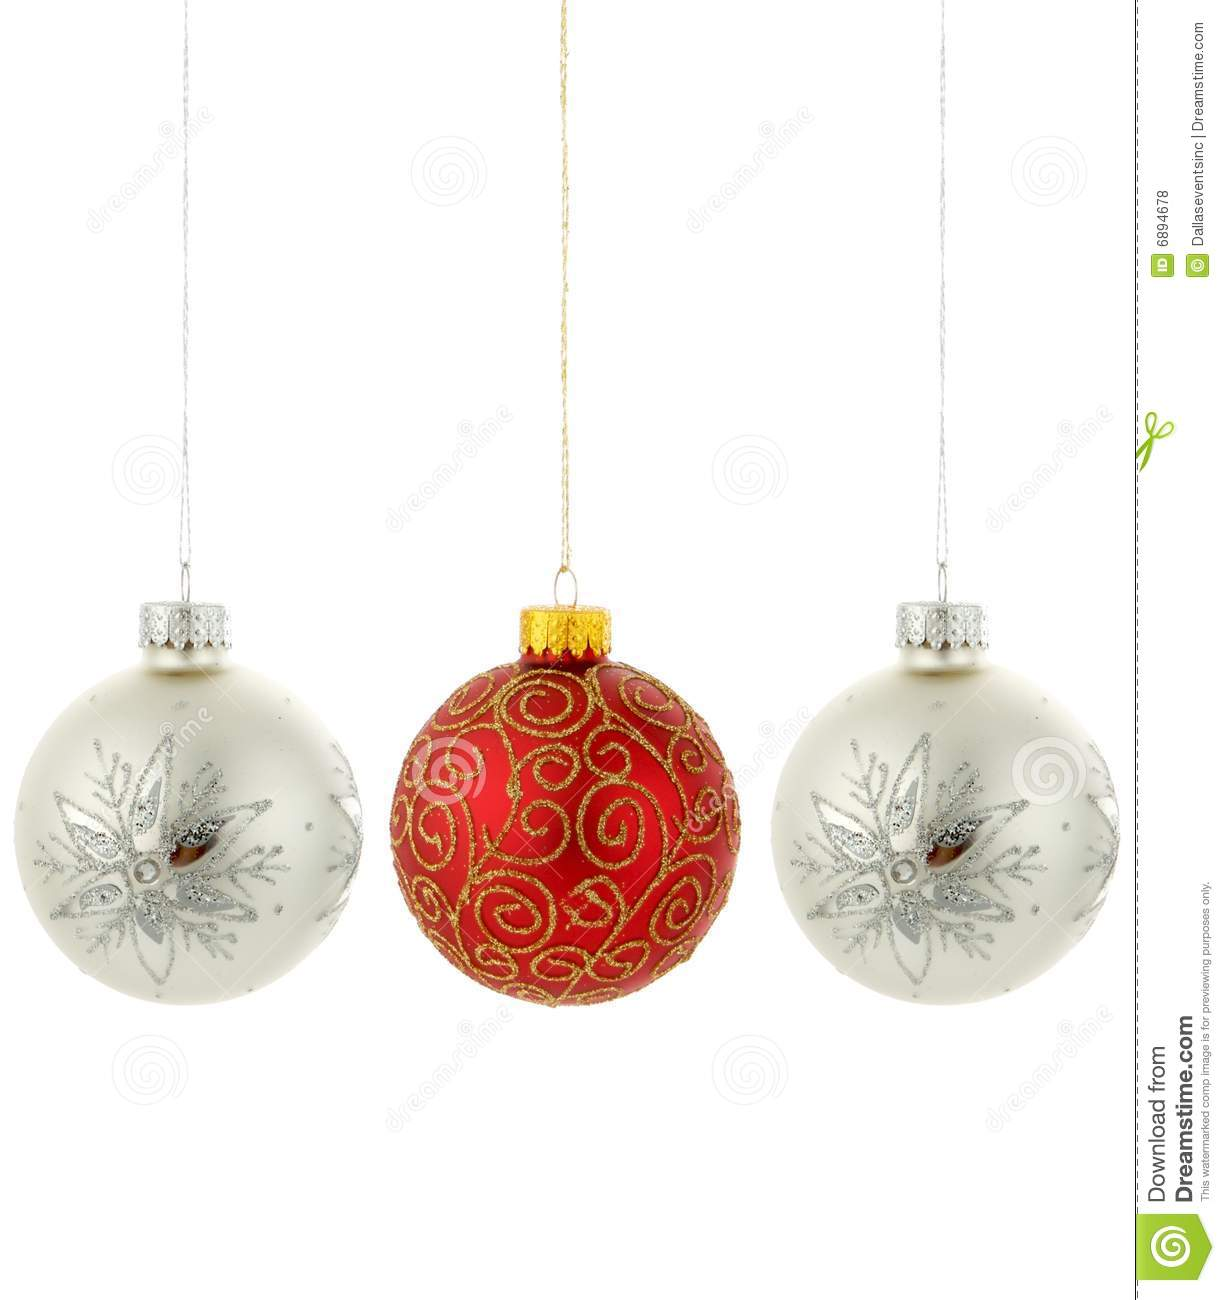 Christmas tree ornaments hanging royalty free stock photos image 6894678 - Hanging christmas ornaments ...